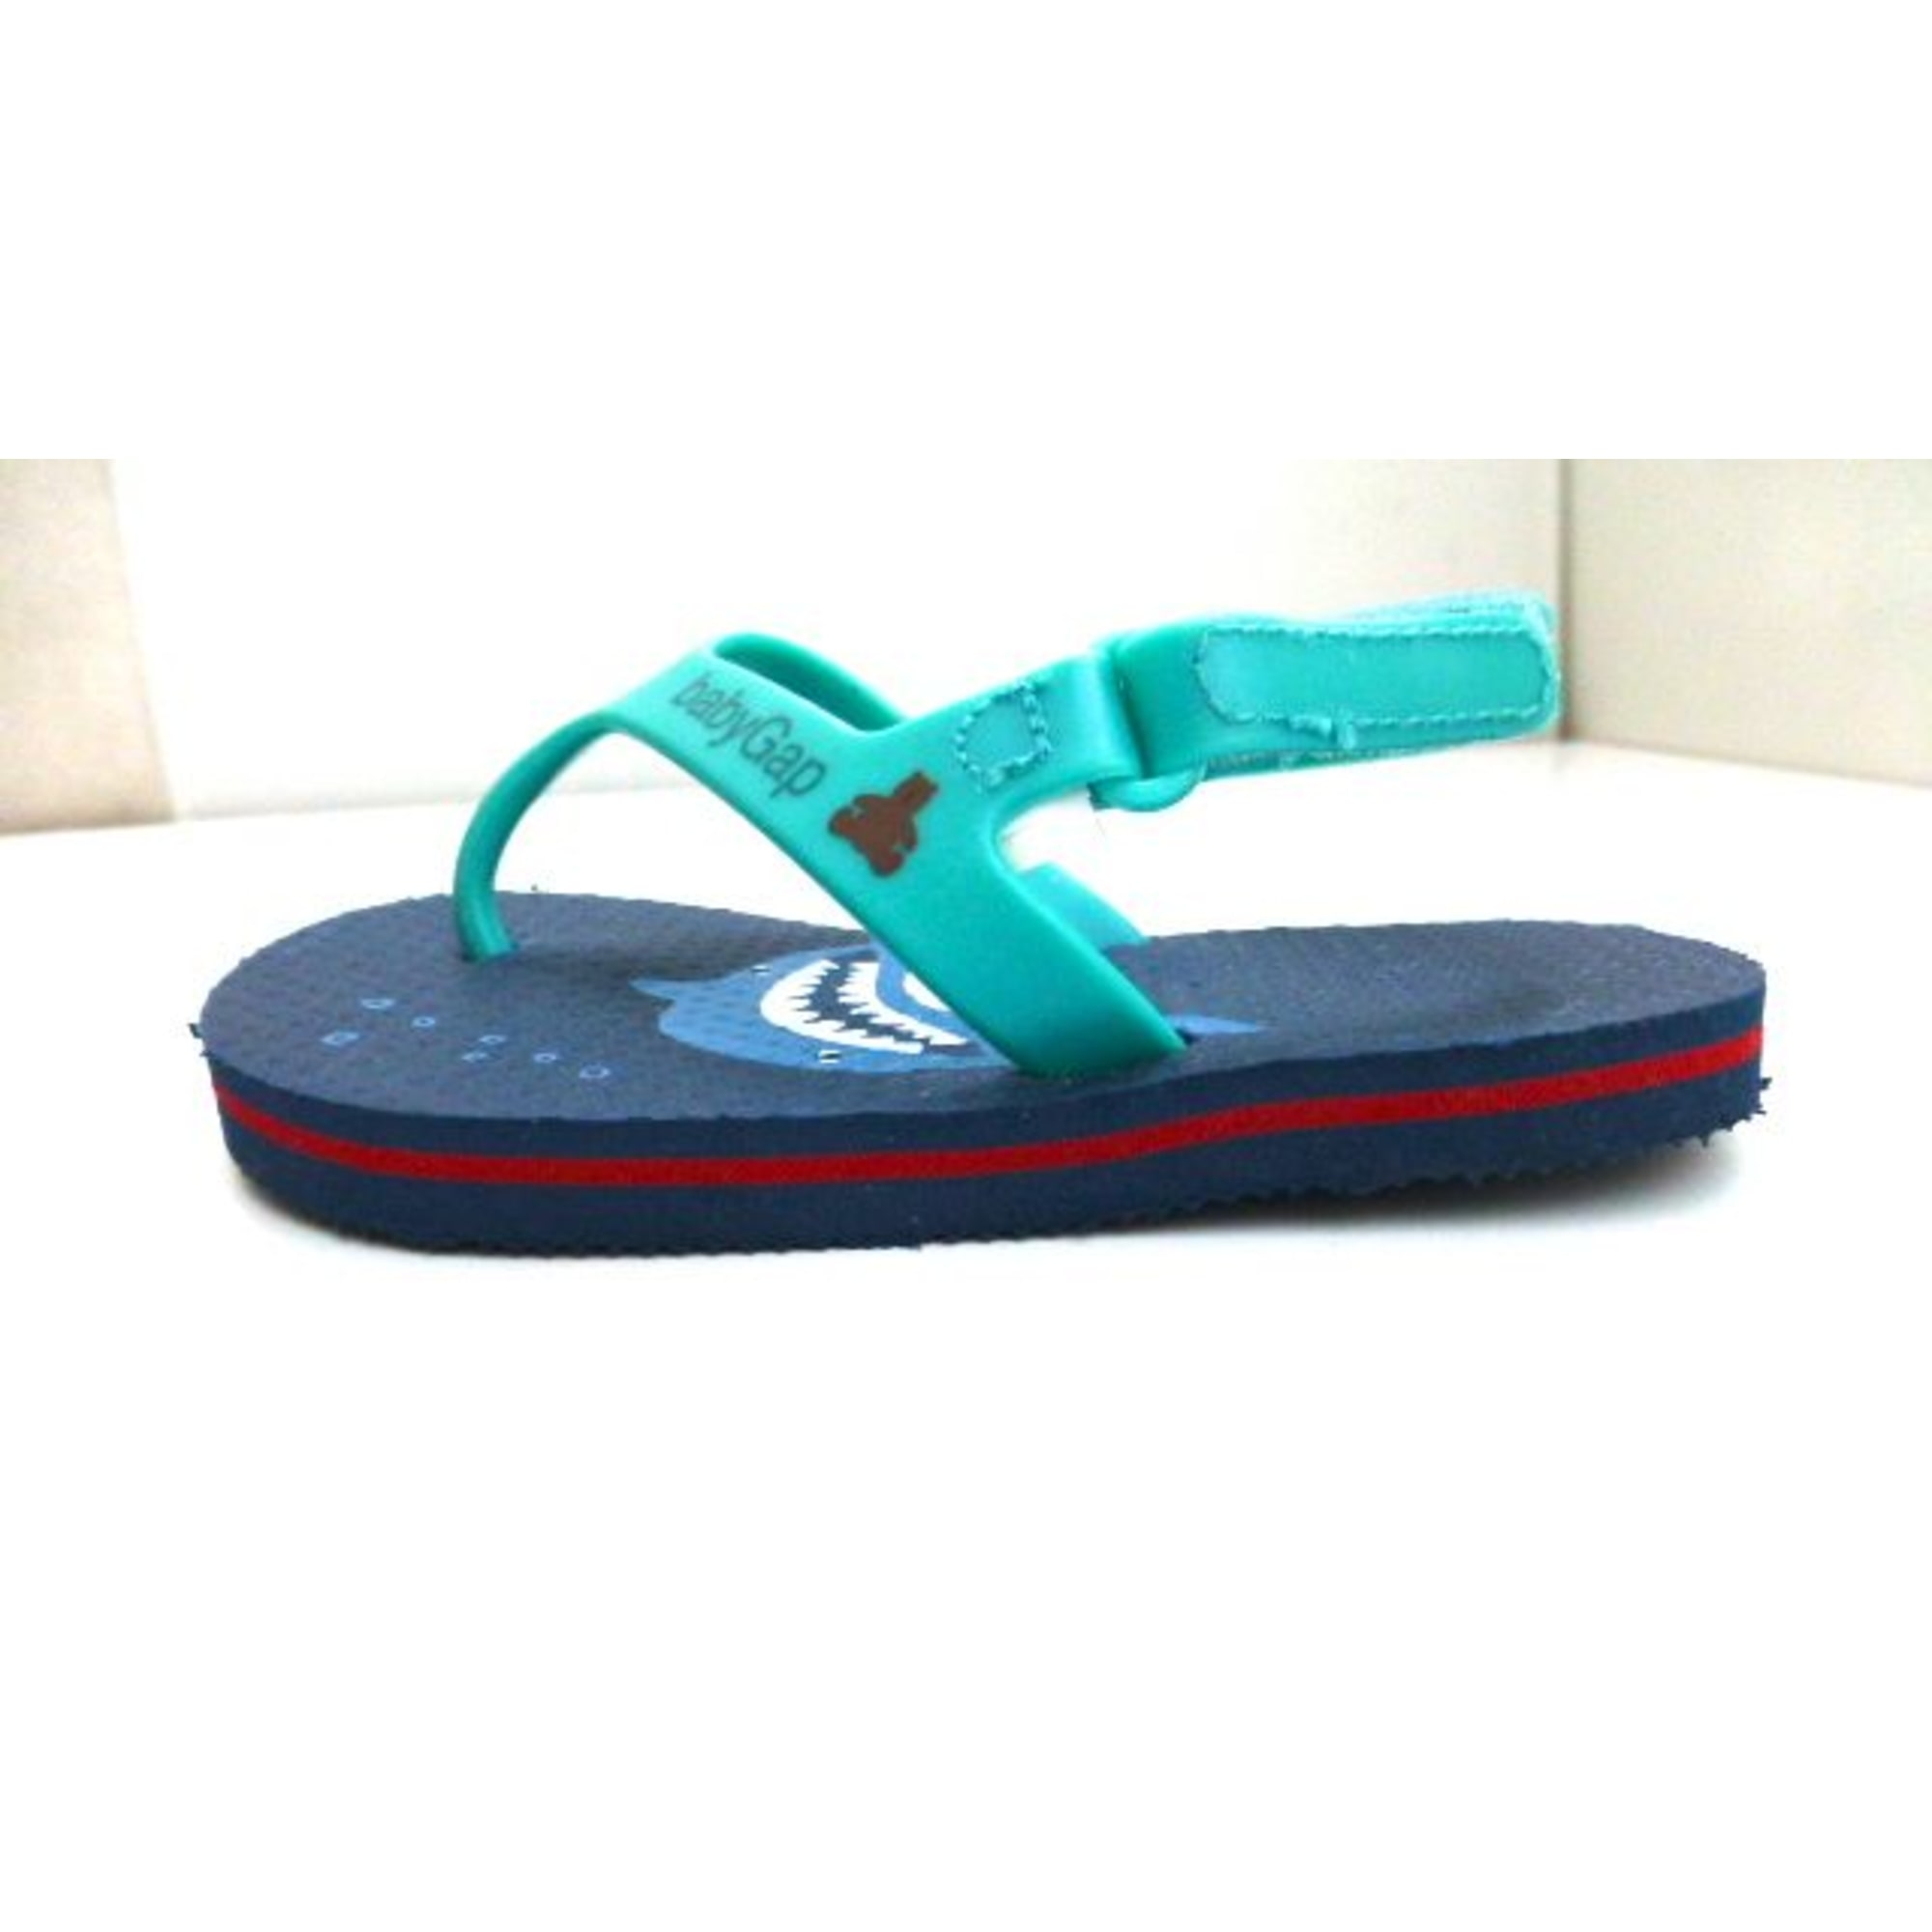 Sandals GAP Blue, navy, turquoise